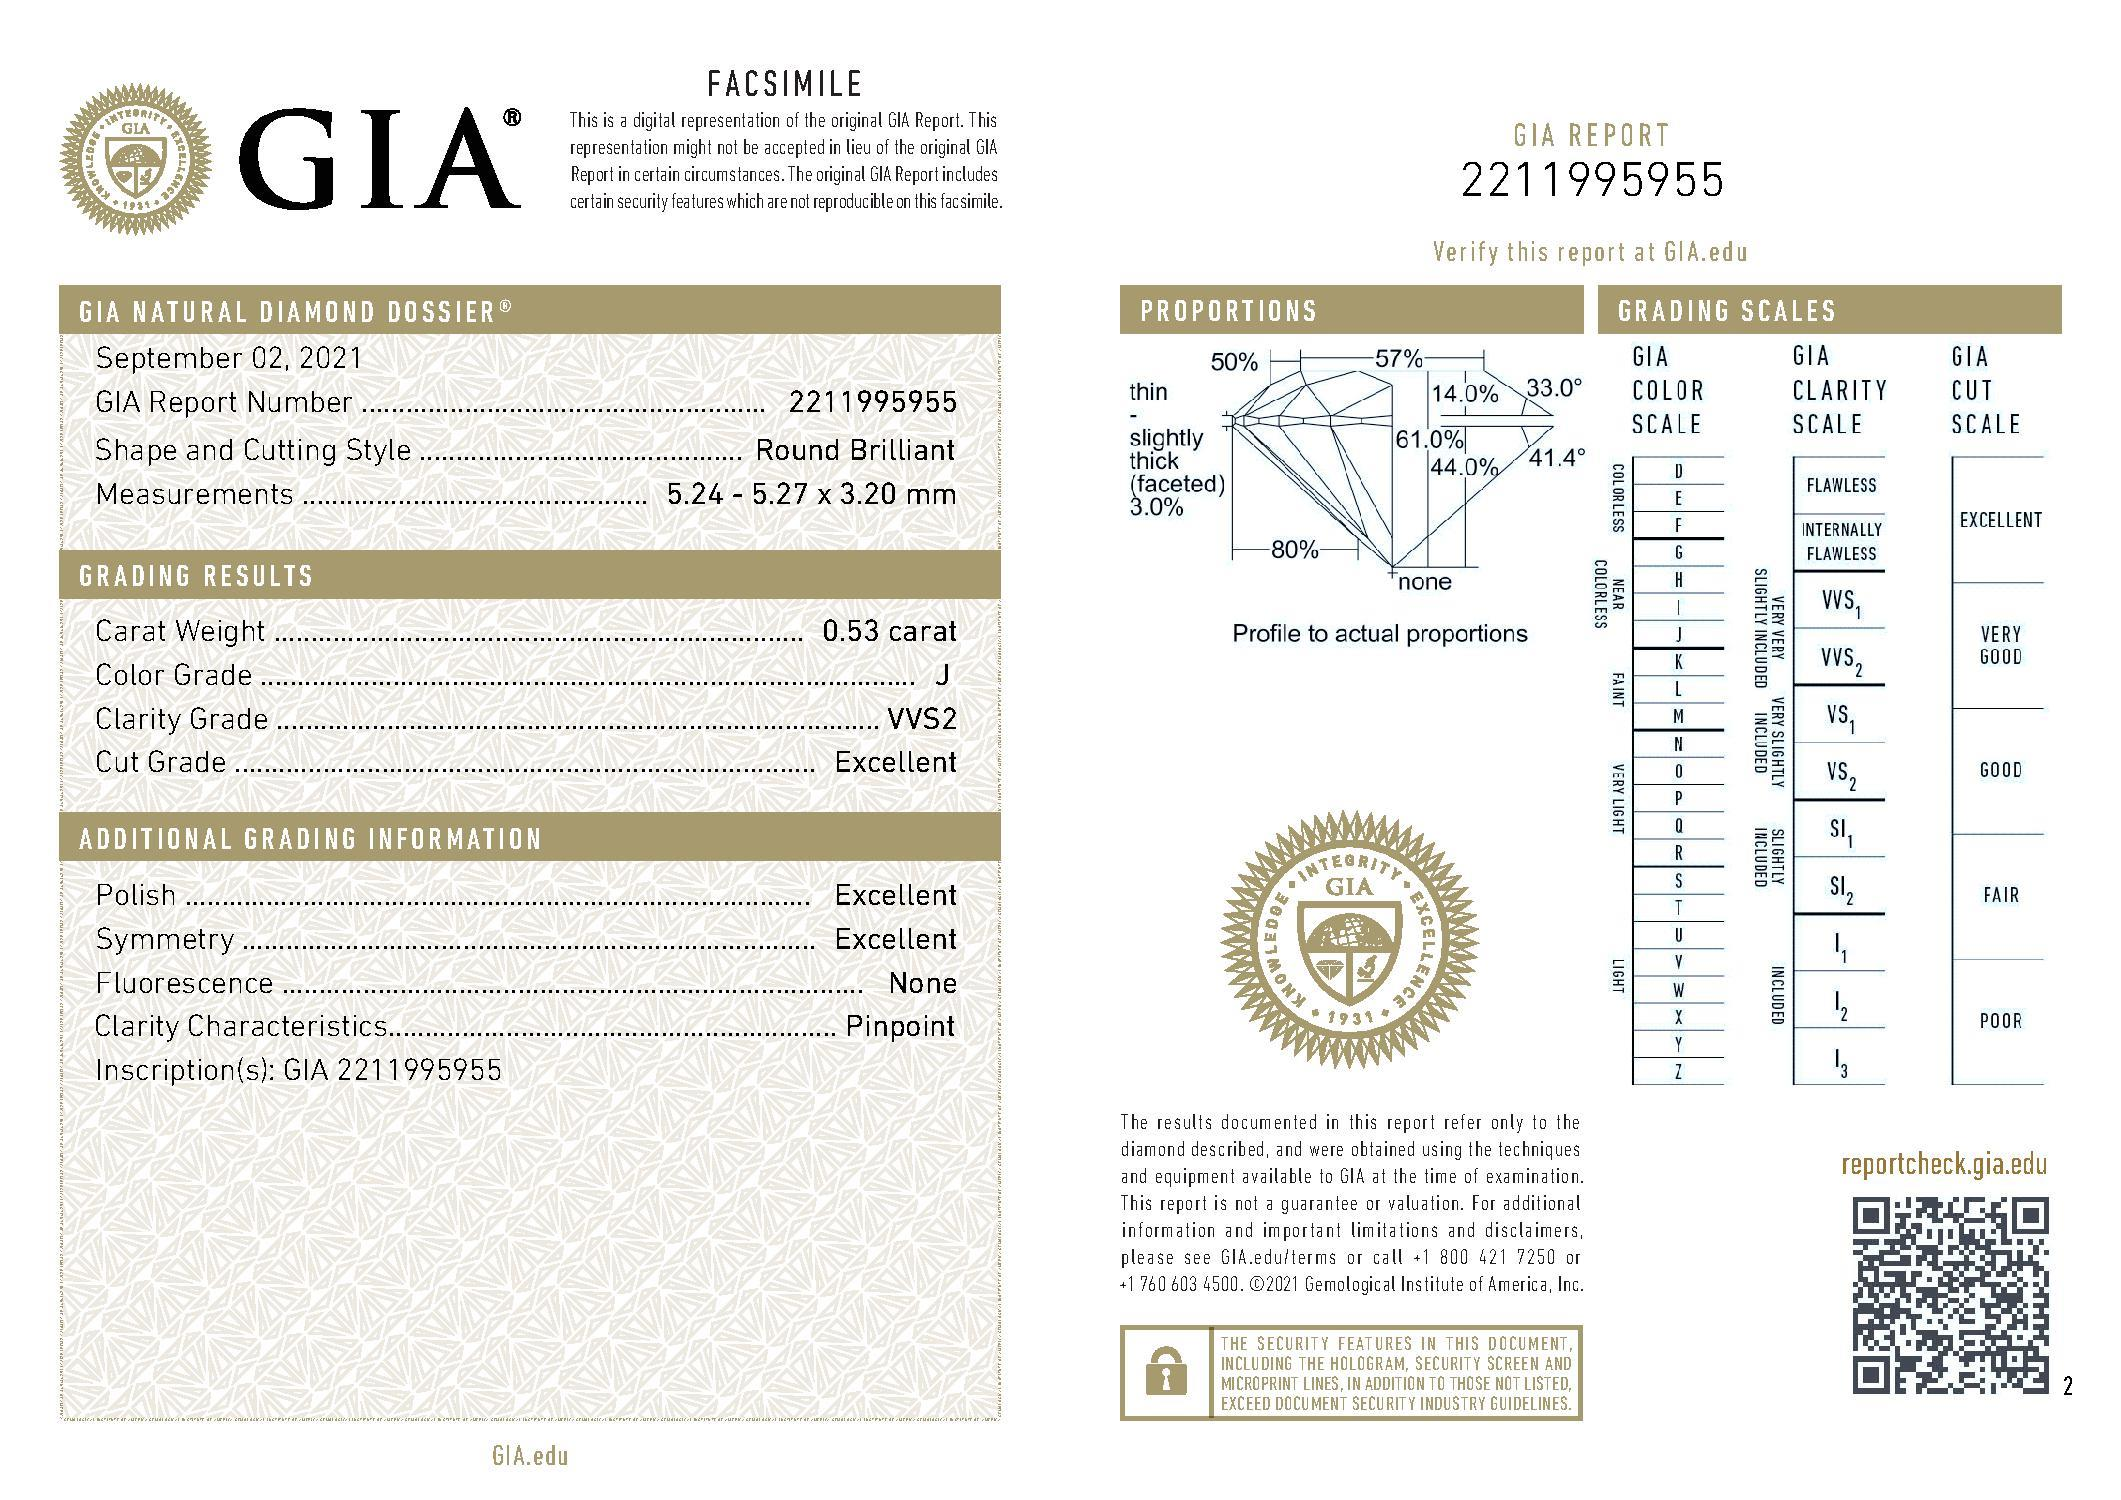 This is a 0.53 carat round shape, J color, VVS2 clarity natural diamond accompanied by a GIA grading report.